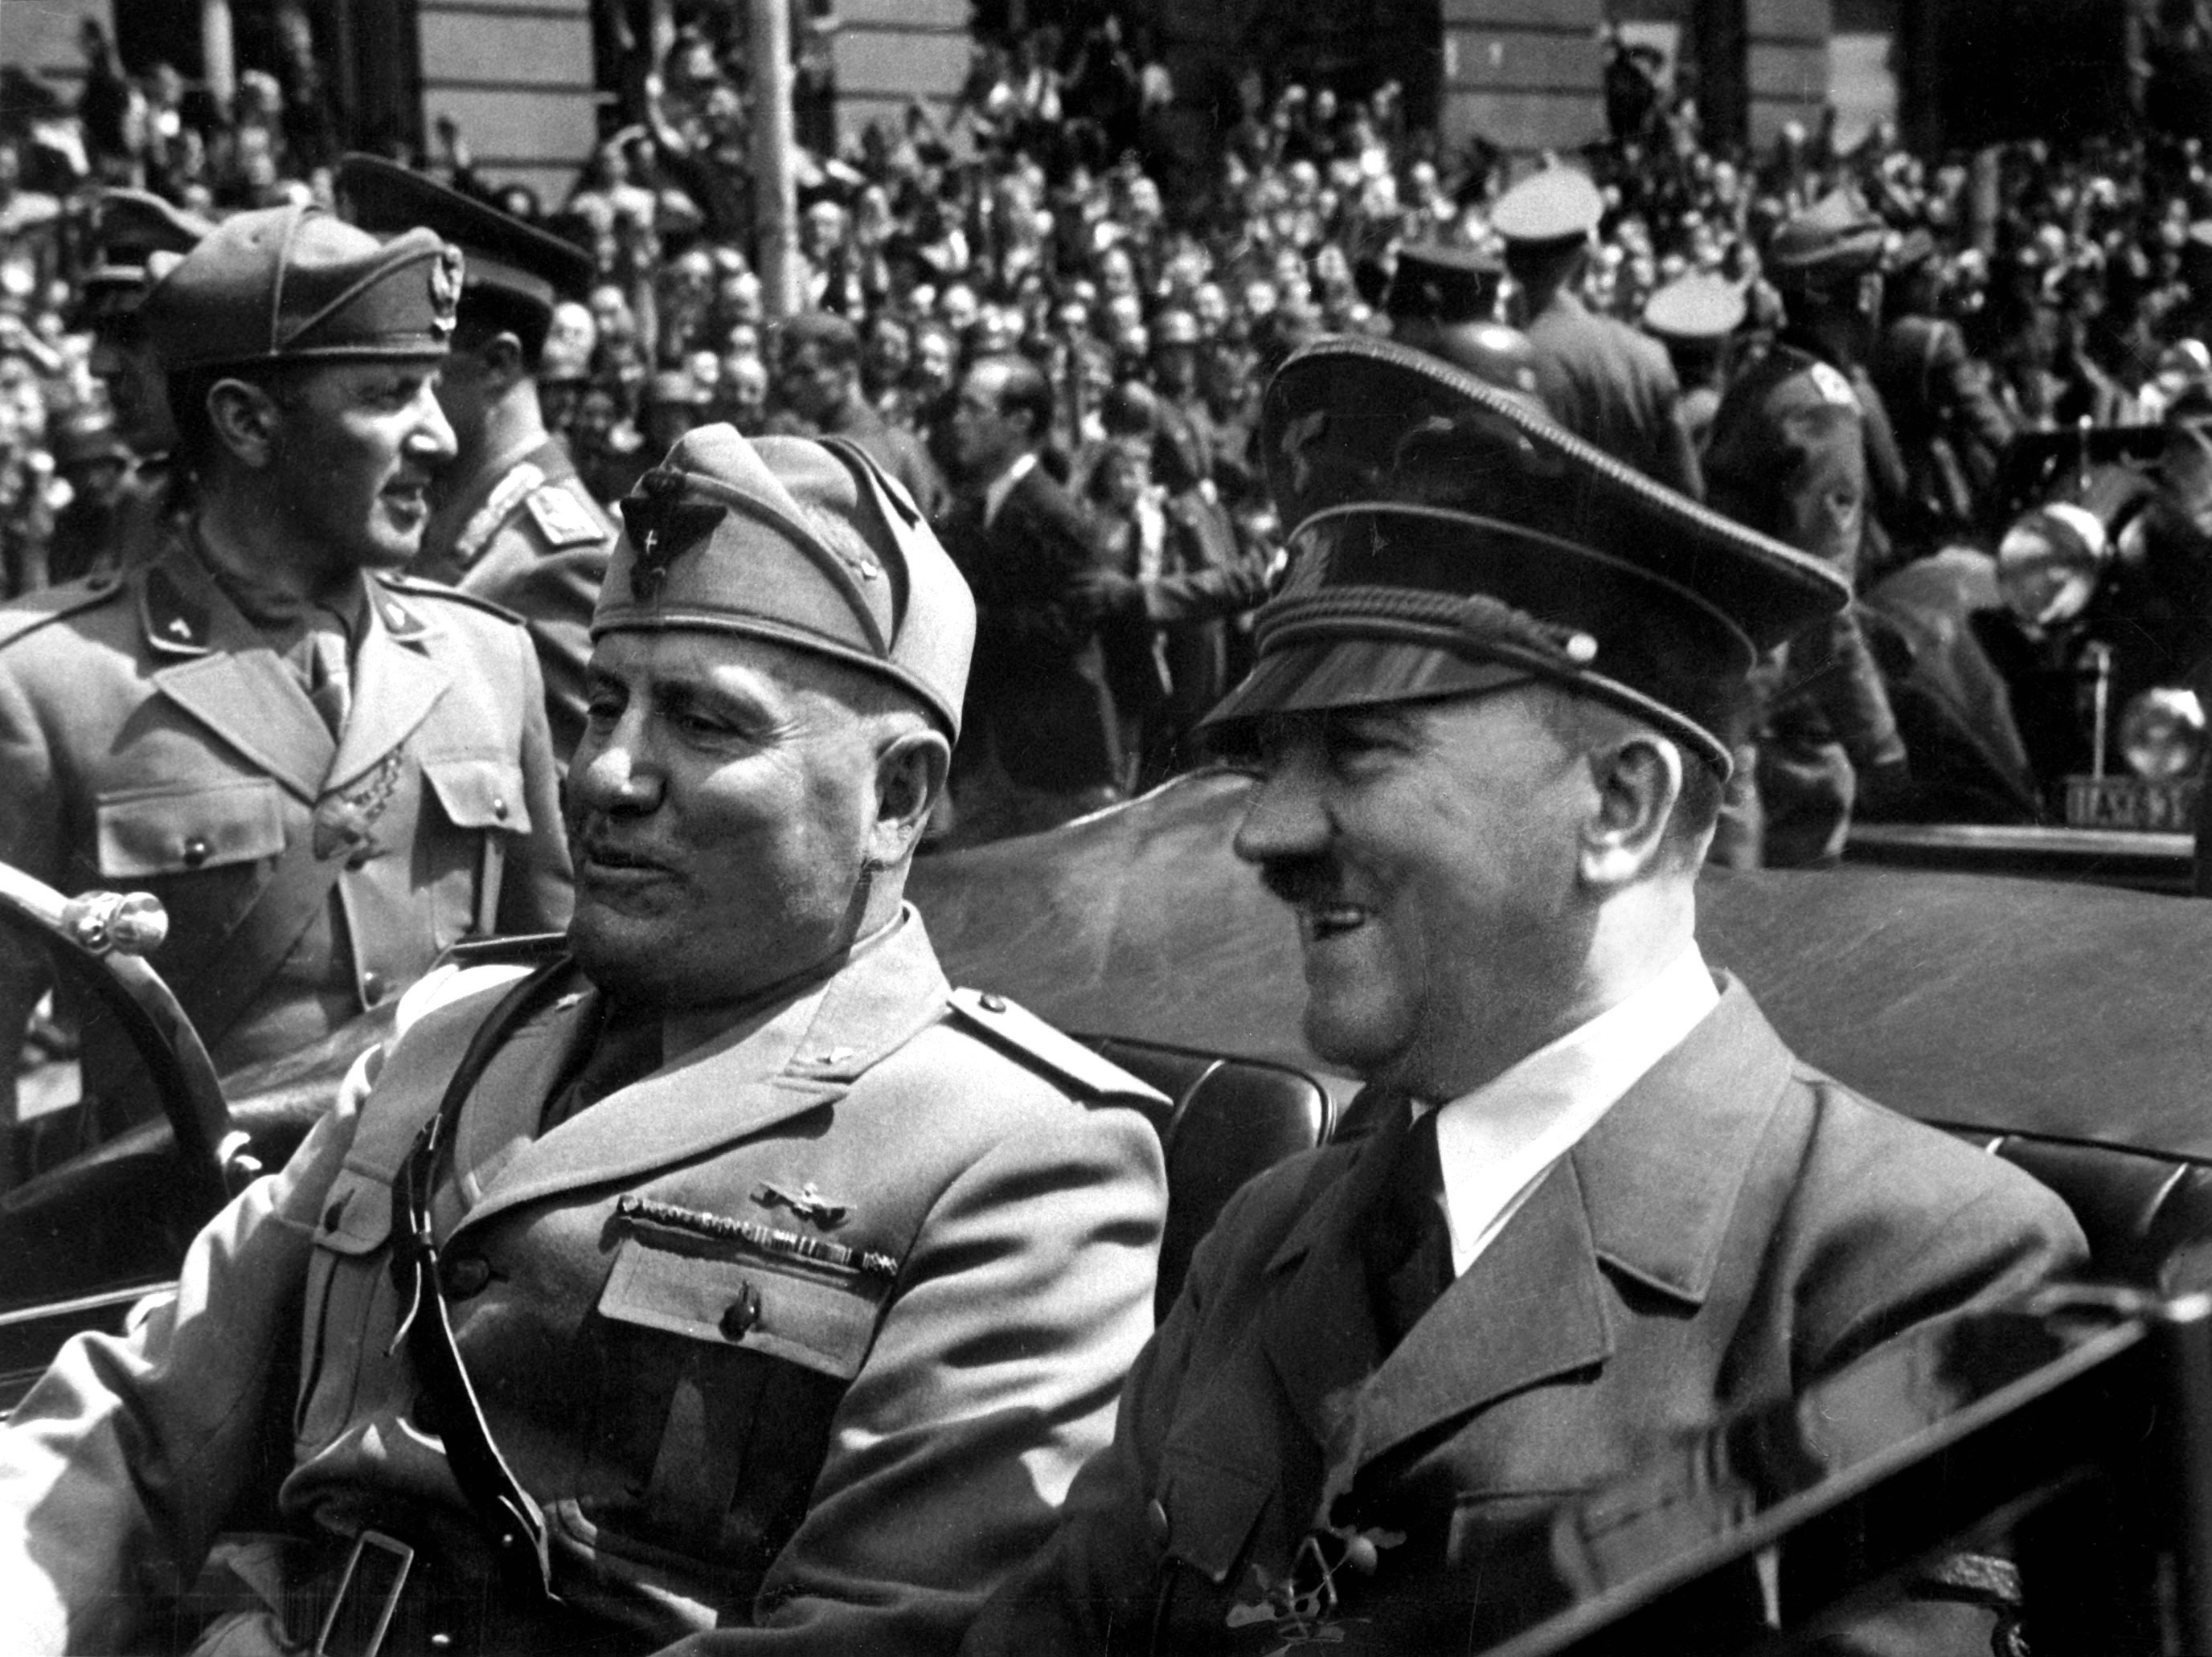 Hitler and Mussolini June 1940 - WINTER OF OUR DISCONTENT MEETS FYRE FESTIVAL